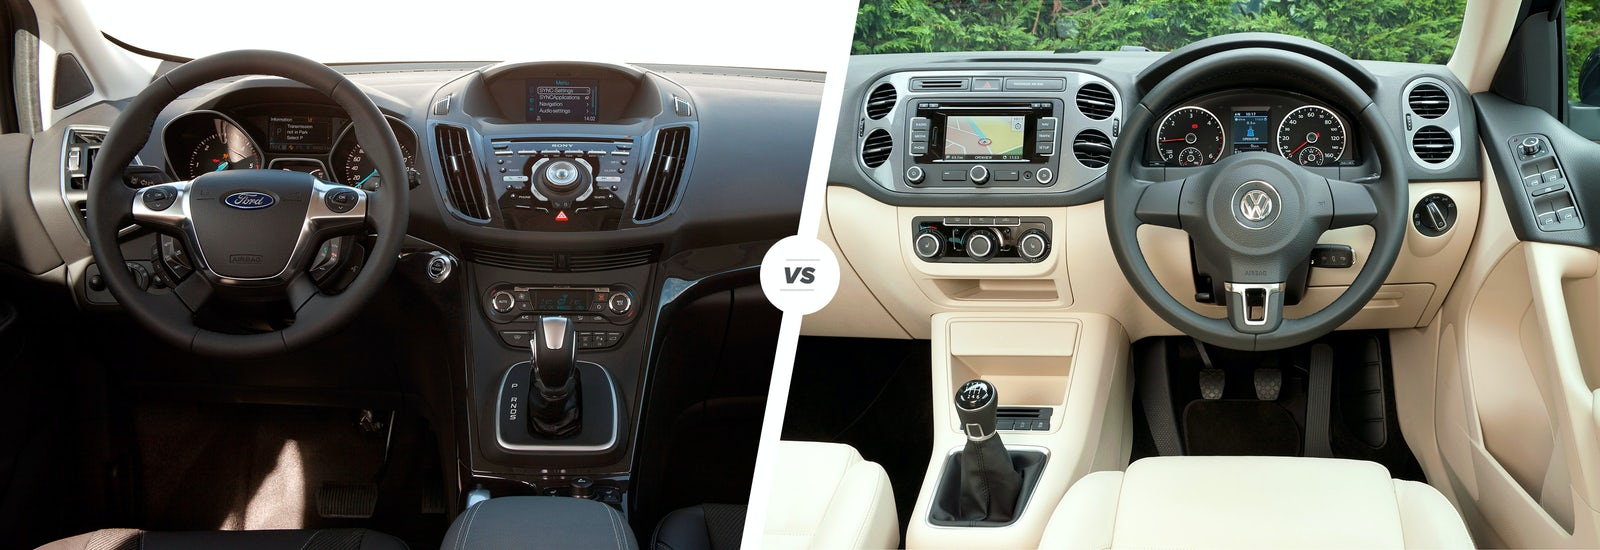 Ford Kuga vs VW Tiguan: crossovers compared   carwow